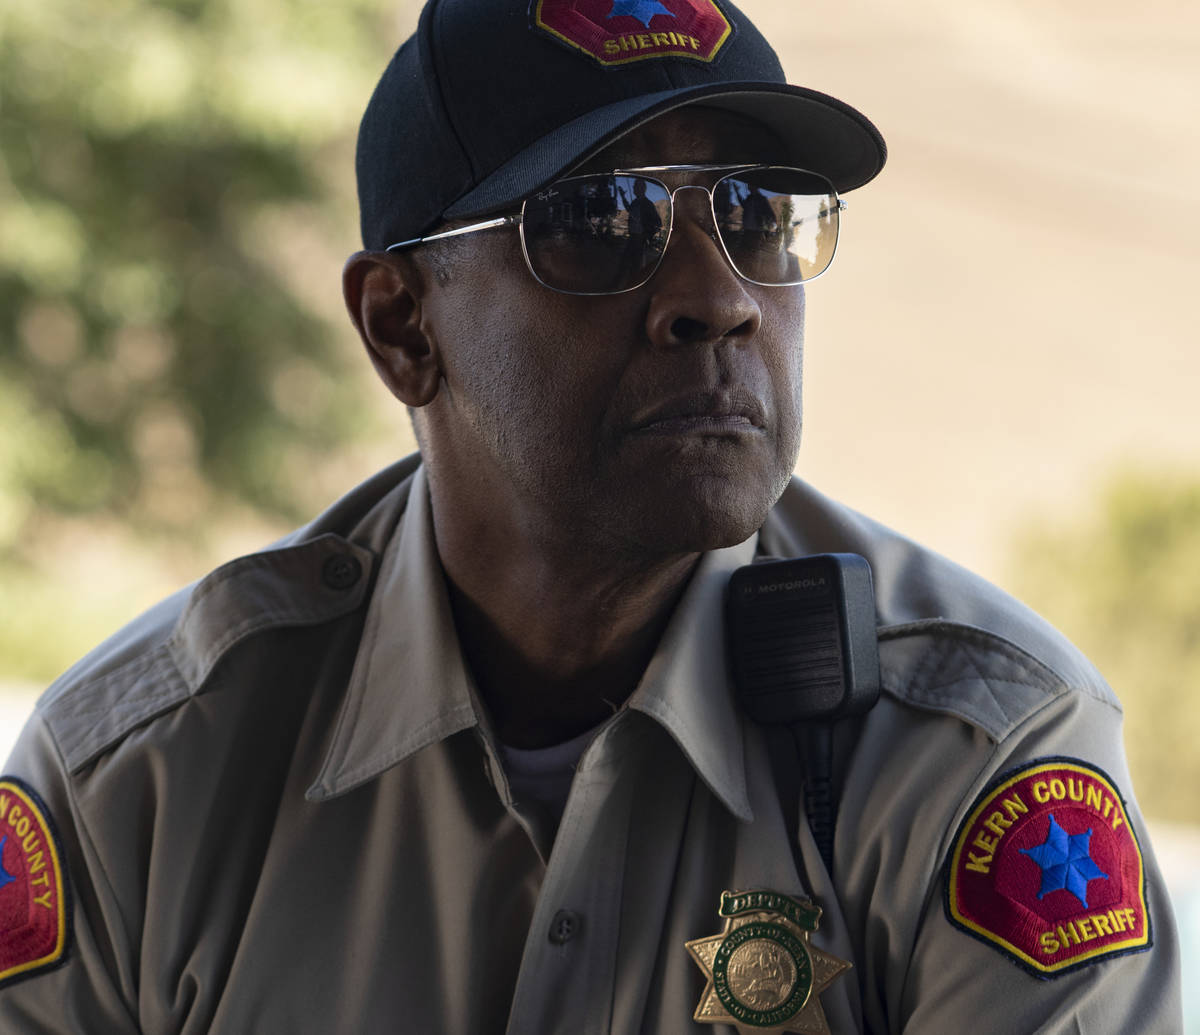 Denzel Washington gained 35 pounds for his role as a policeman chasing a possible serial killer ...